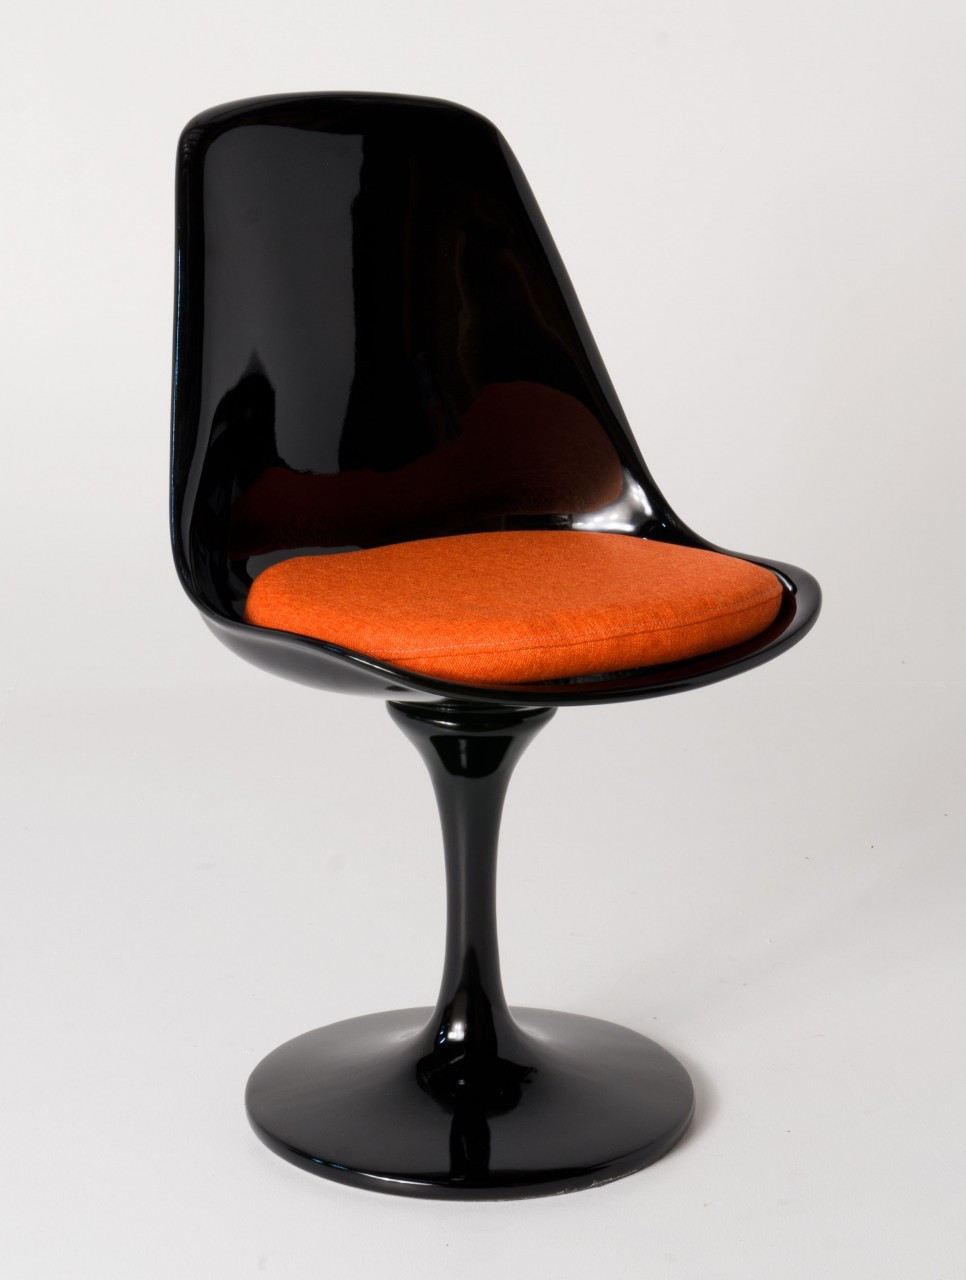 Replica Eero Saarinen Tulip Chair-Black Fibreglass/Orange Cushion : saarinen tulip chair knock off - Cheerinfomania.Com